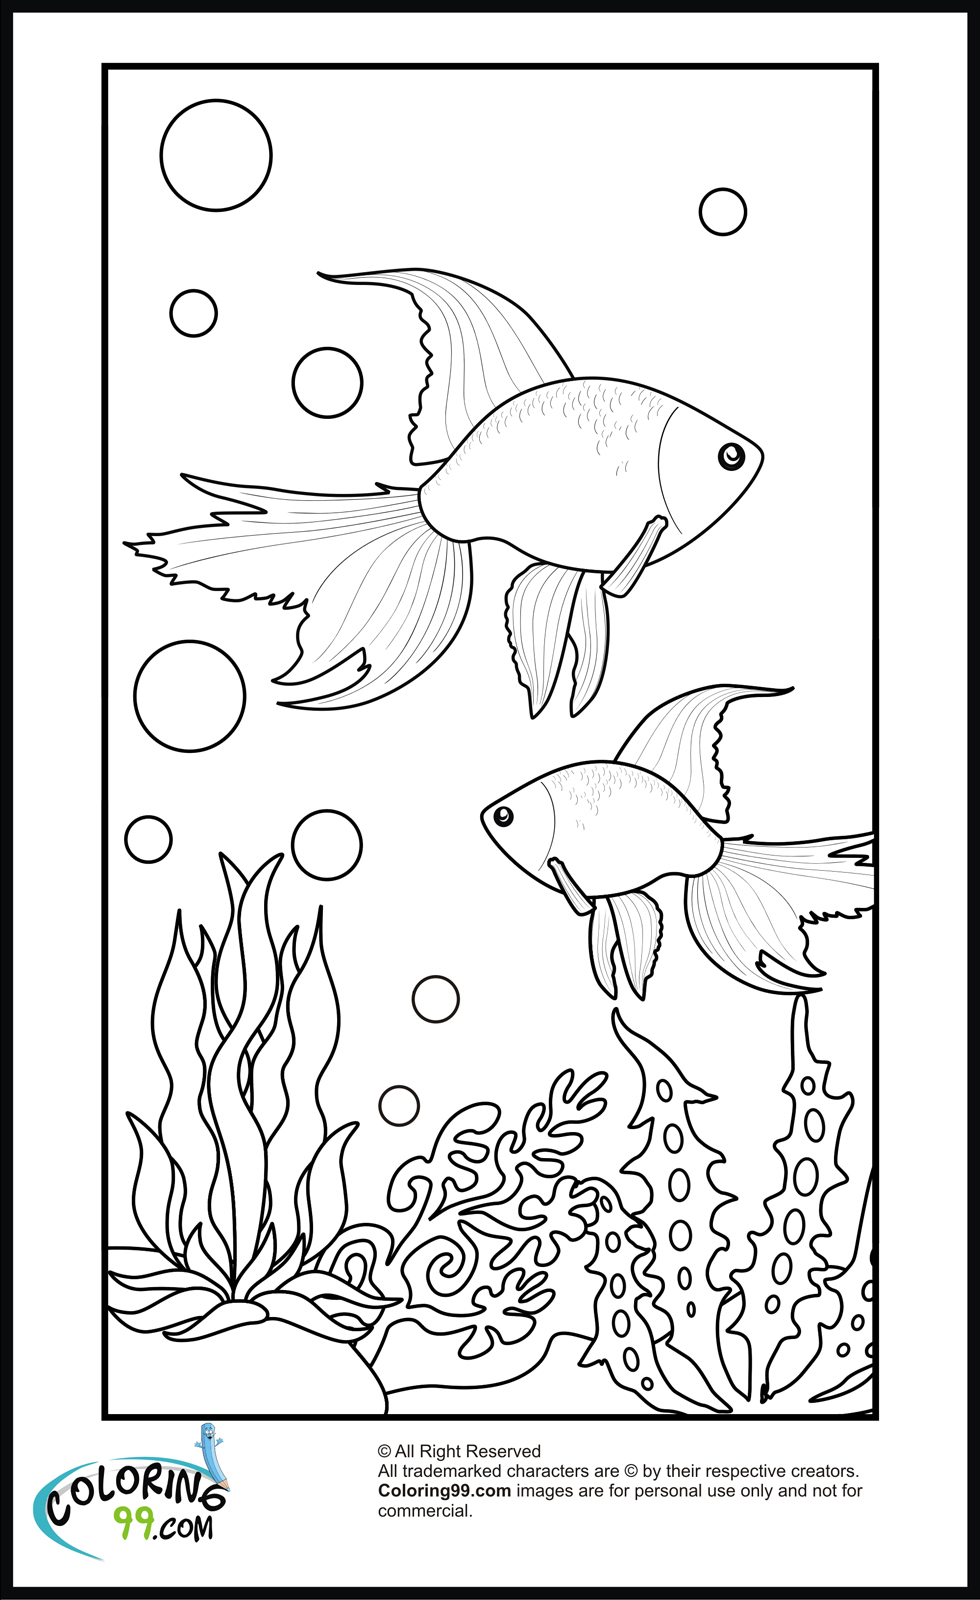 Simple goldfish coloring page - a-k-b.info